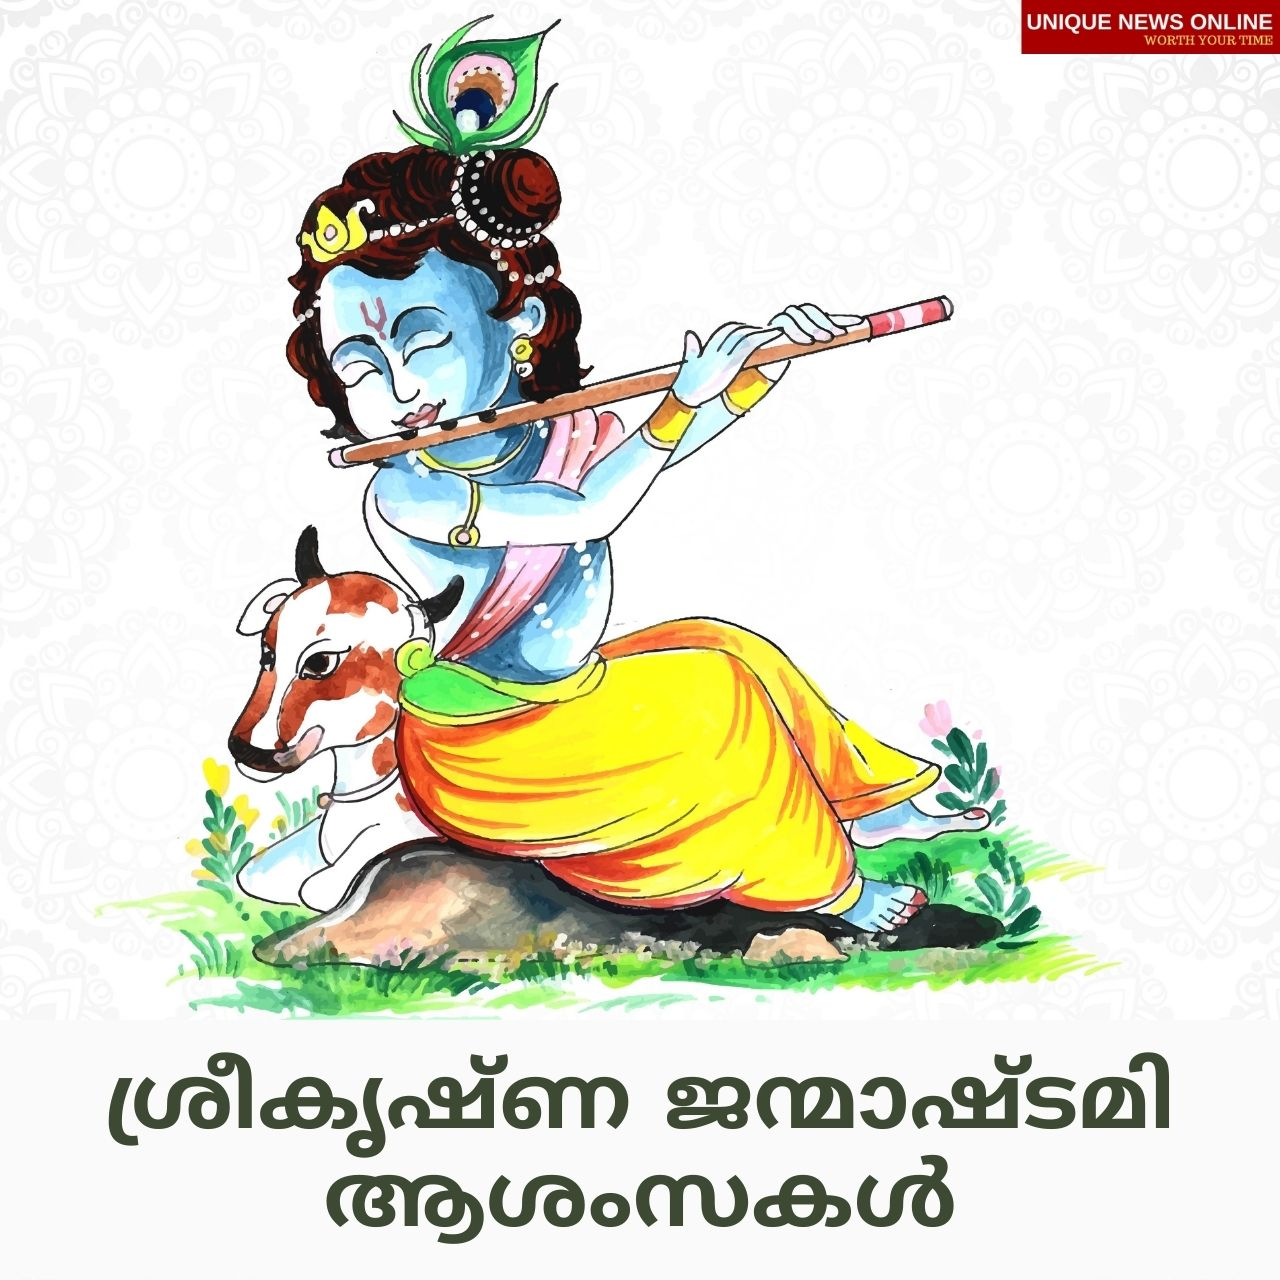 Happy Krishna Janmashtami 2021 Malayalam Wishes, Messages, Quotes, HD Images, Messages, Greetings, Facebook, and WhatsApp Status to share